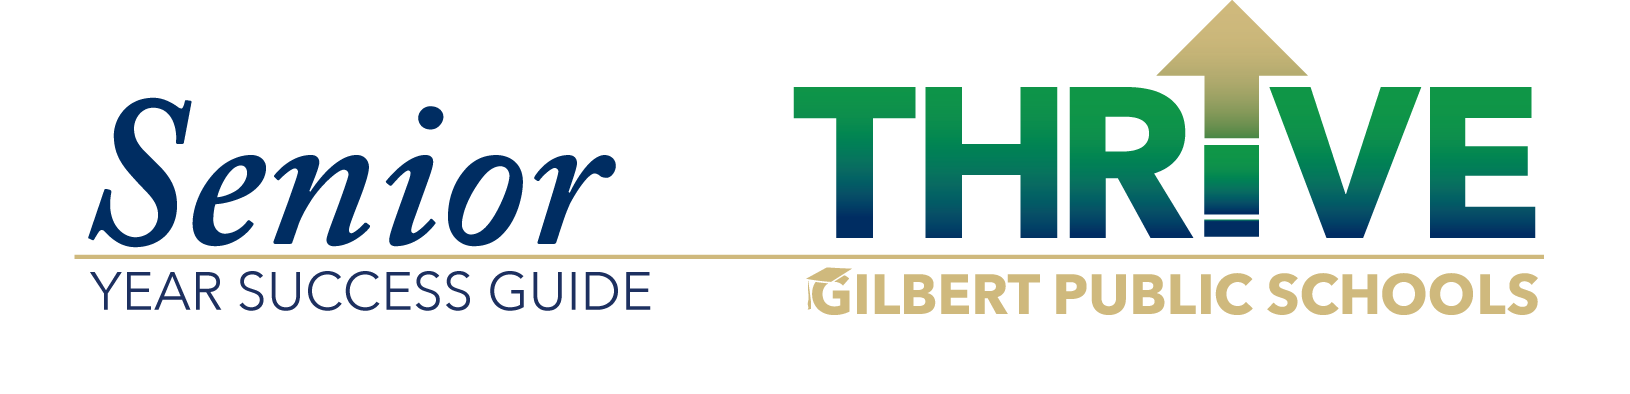 Senior Year Success Guide THRIVE Gilbert Public Schools